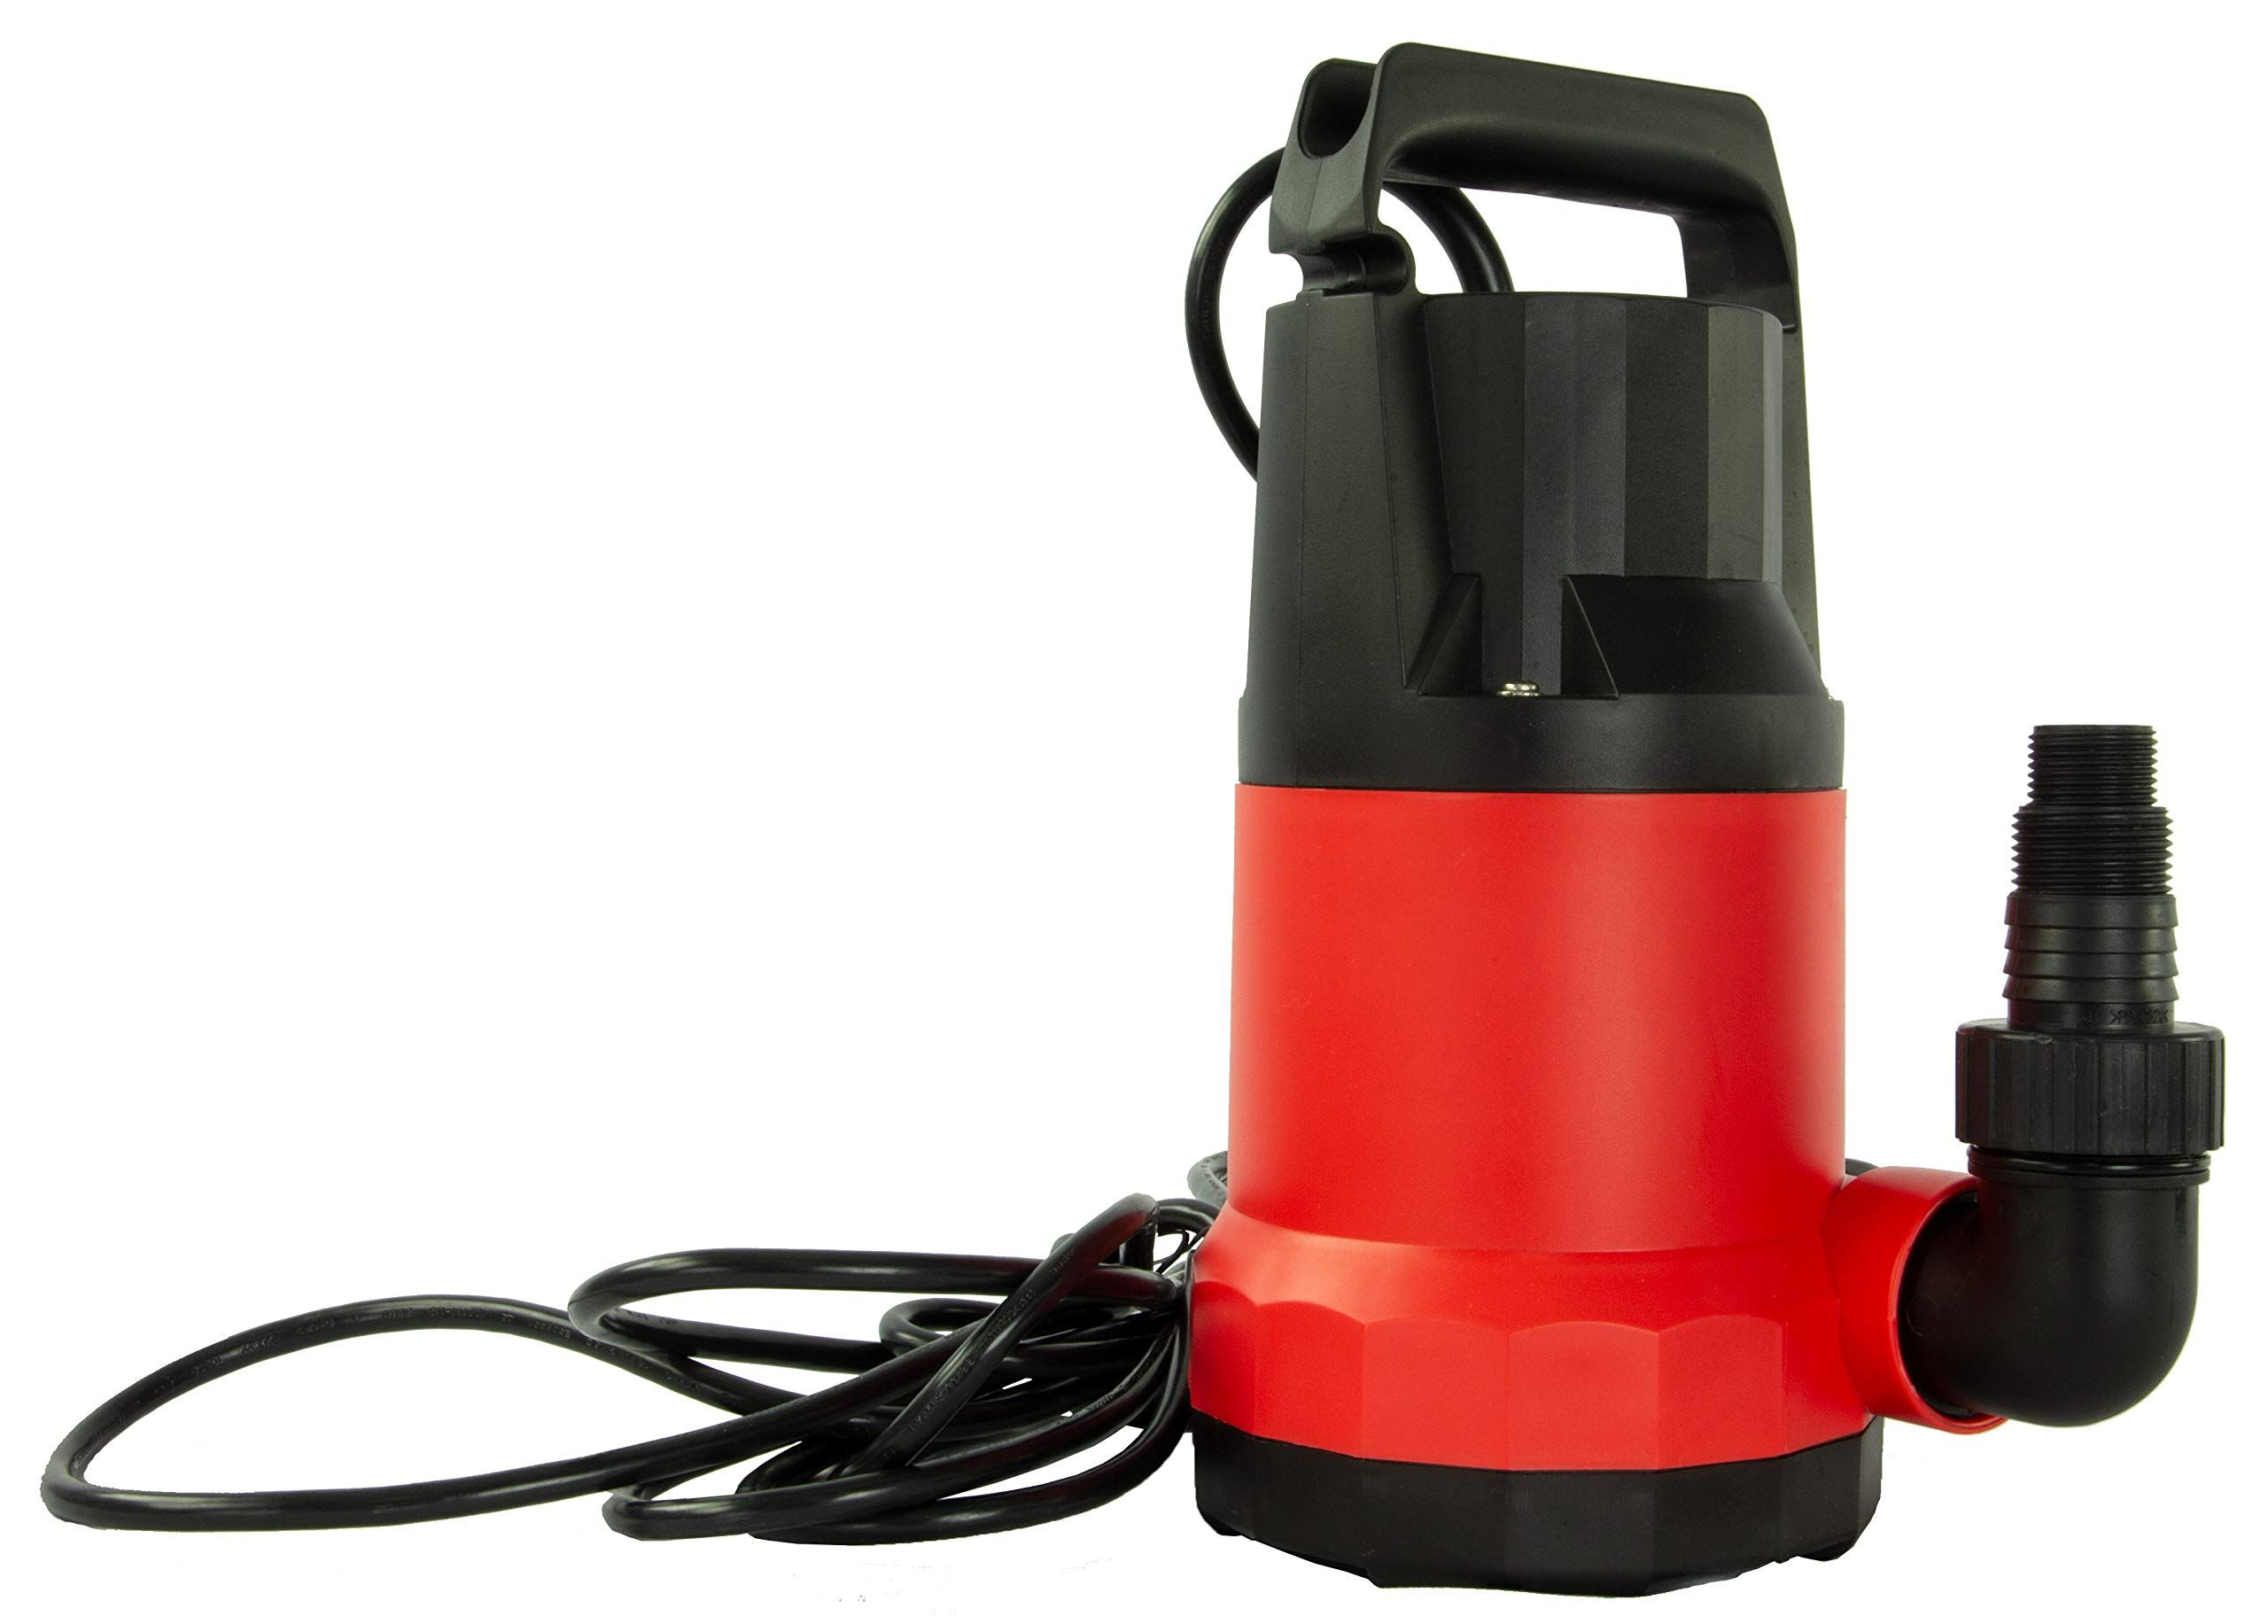 Rx Clear Niagara Rapid Submersible Cover Pool Pump 2500 Gph 1 3 Hp Portable Pump Easy To Use Retain The Life Of Your Pool Cover Pool Pump Submersible